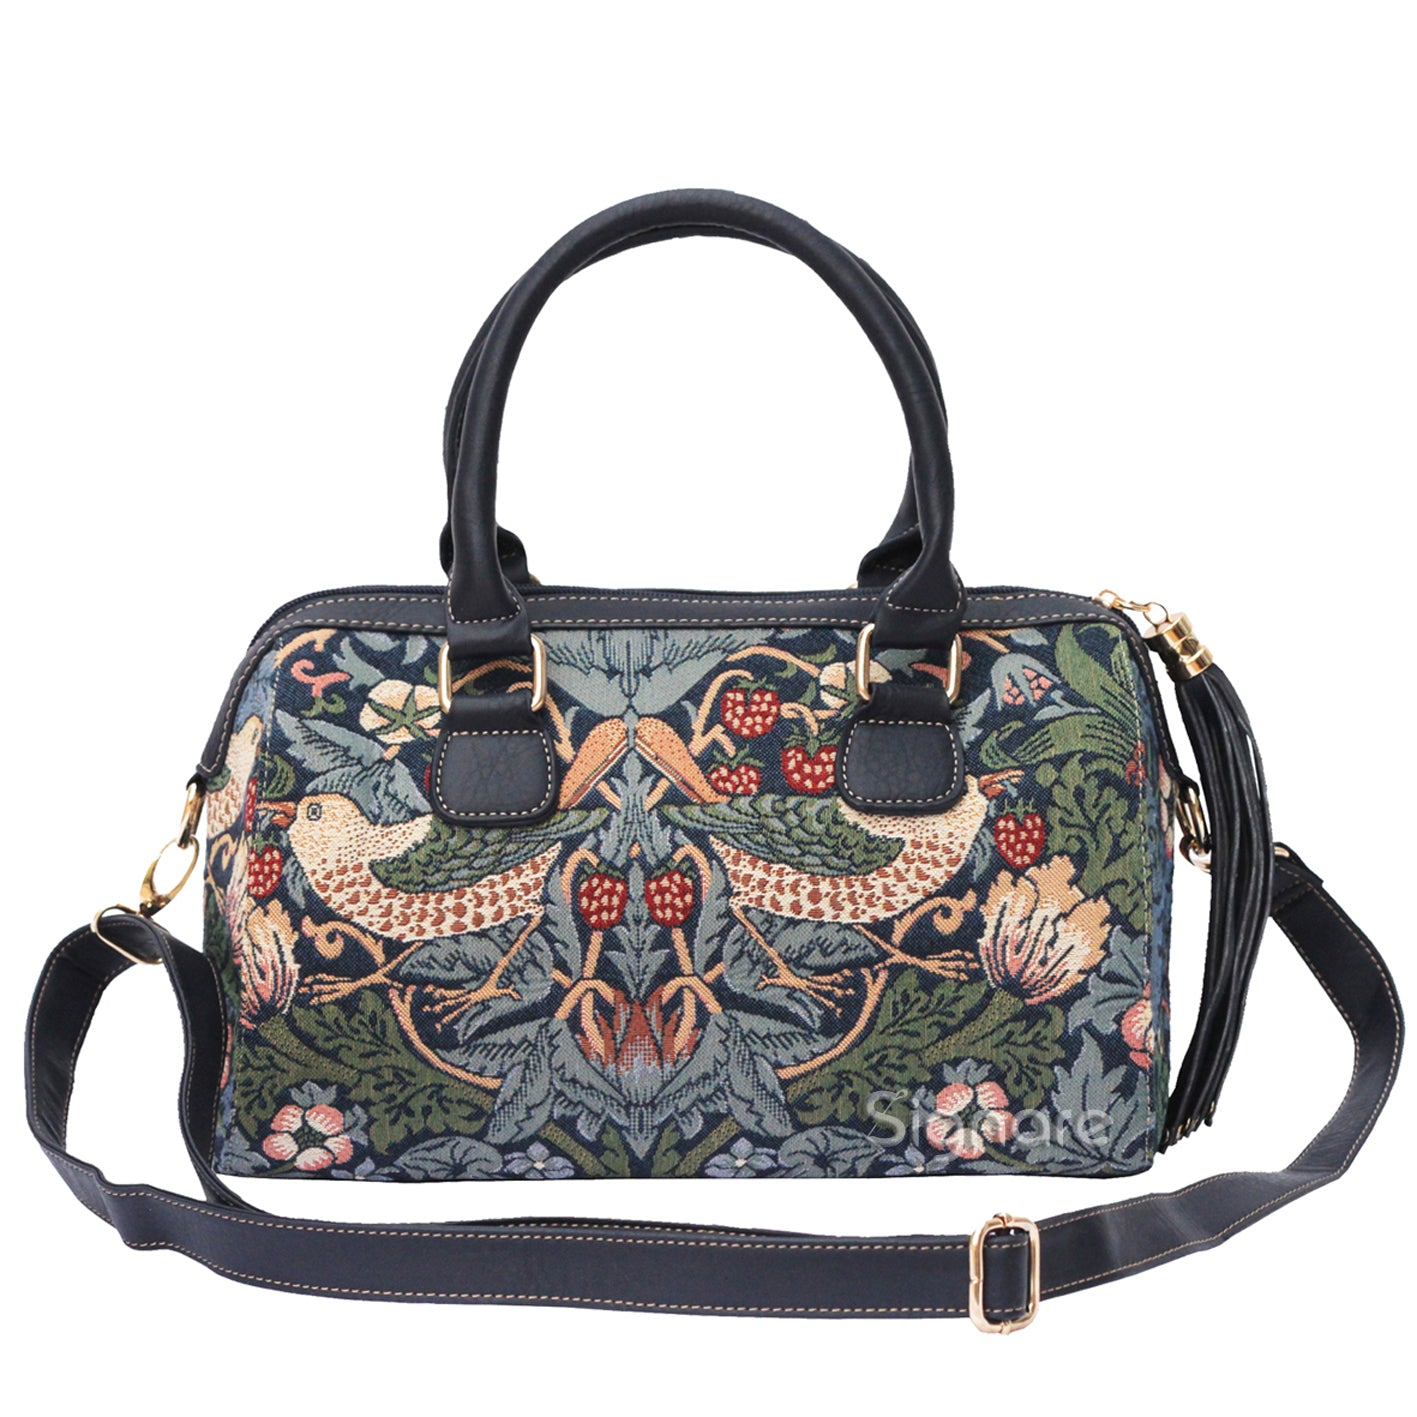 WILLIAM MORRIS STRAWBERRY THIEF BLUE TASSEL BAG CROSSBODY HANDBAG - www.signareusa.com